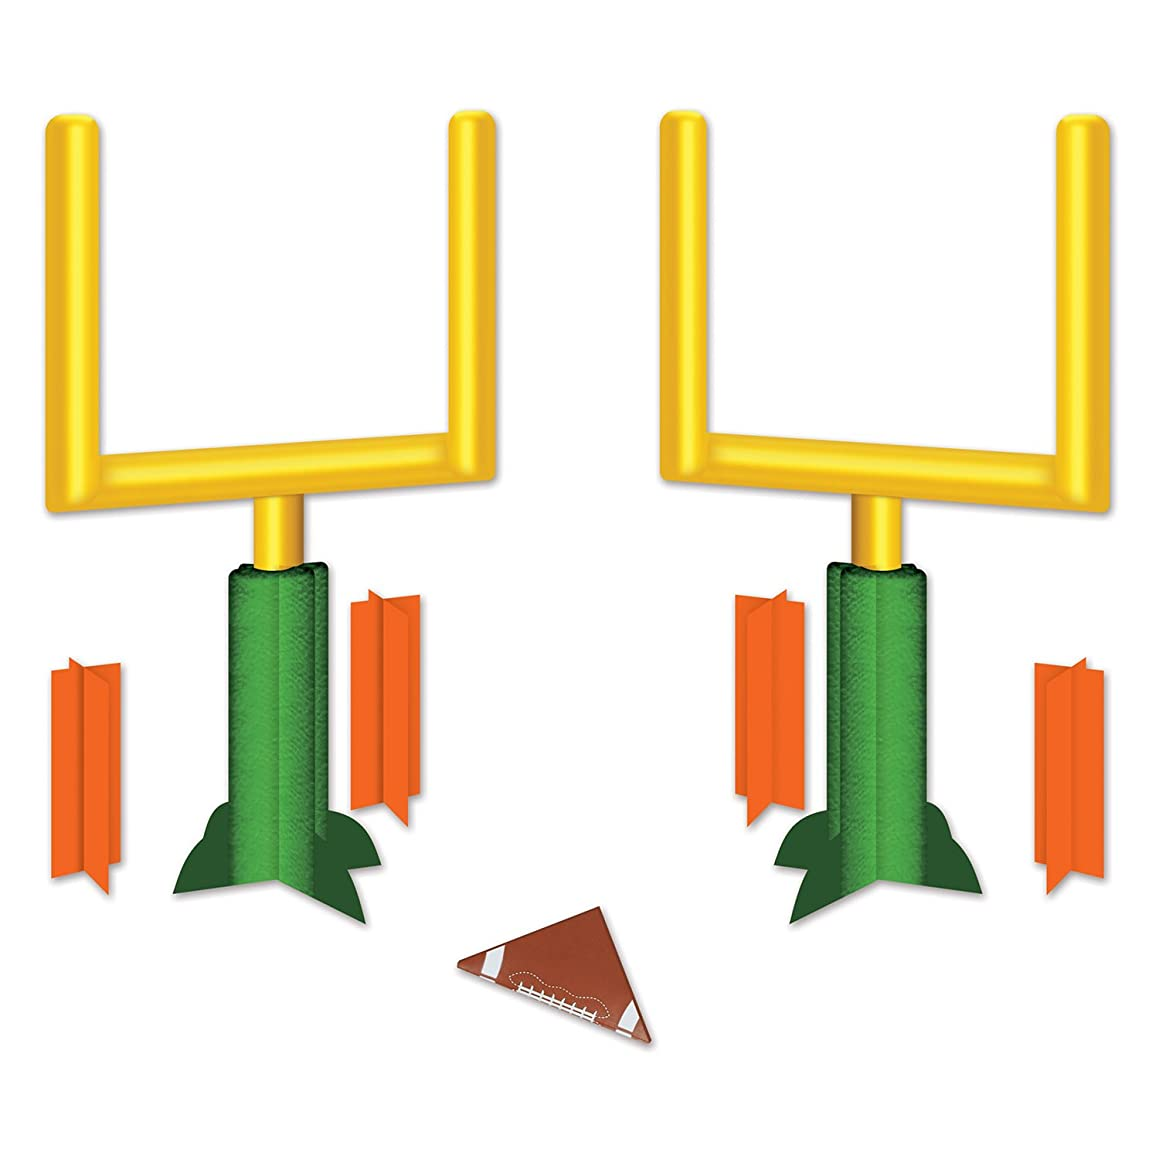 Beistle 54884 3-D Football Goal Post Centerpieces (2 Pack), 11